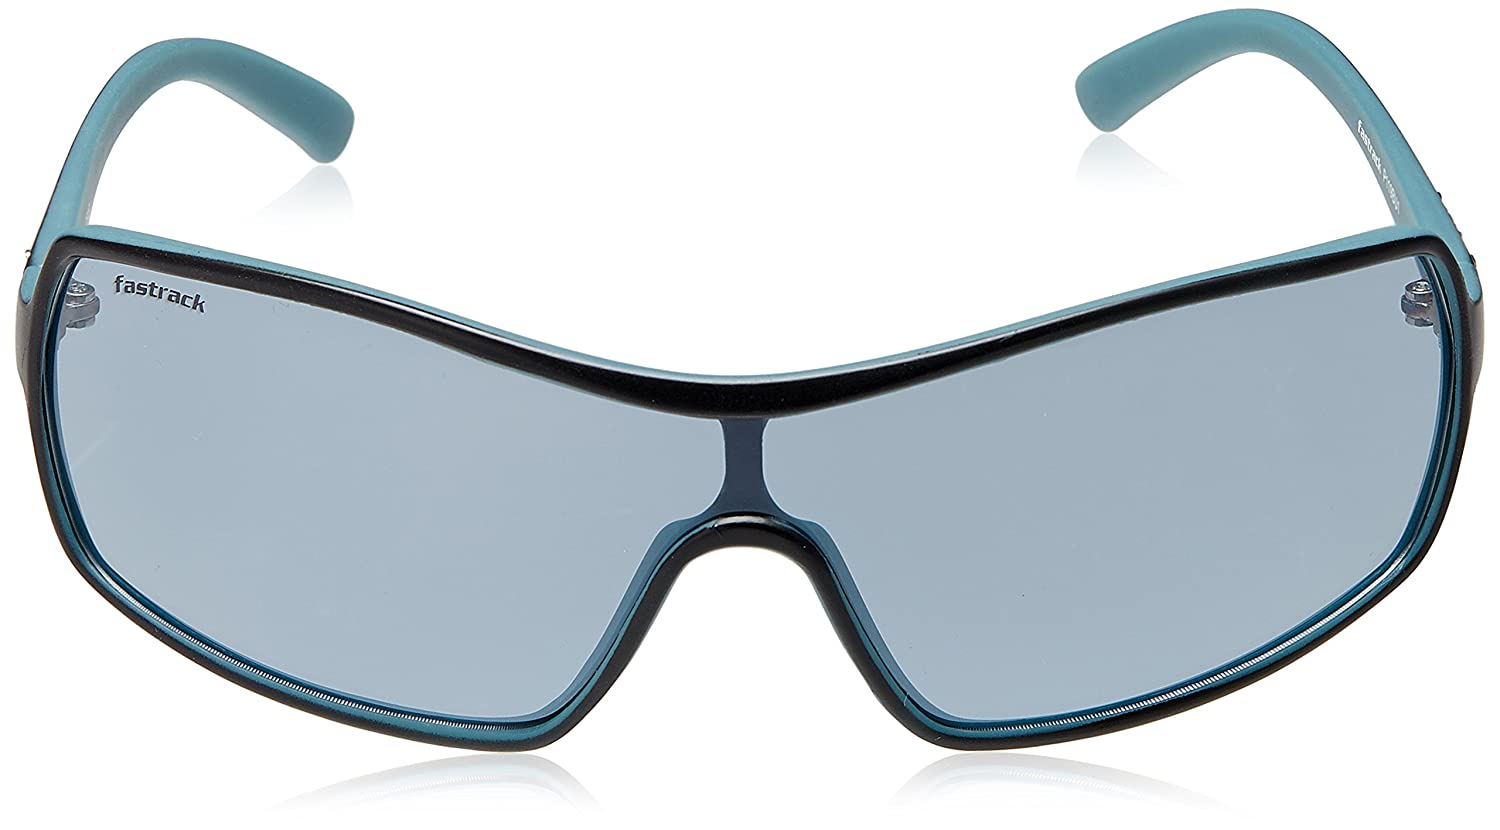 1fc3907208 Fastrack Shield Men s Sunglasses (P119BU1